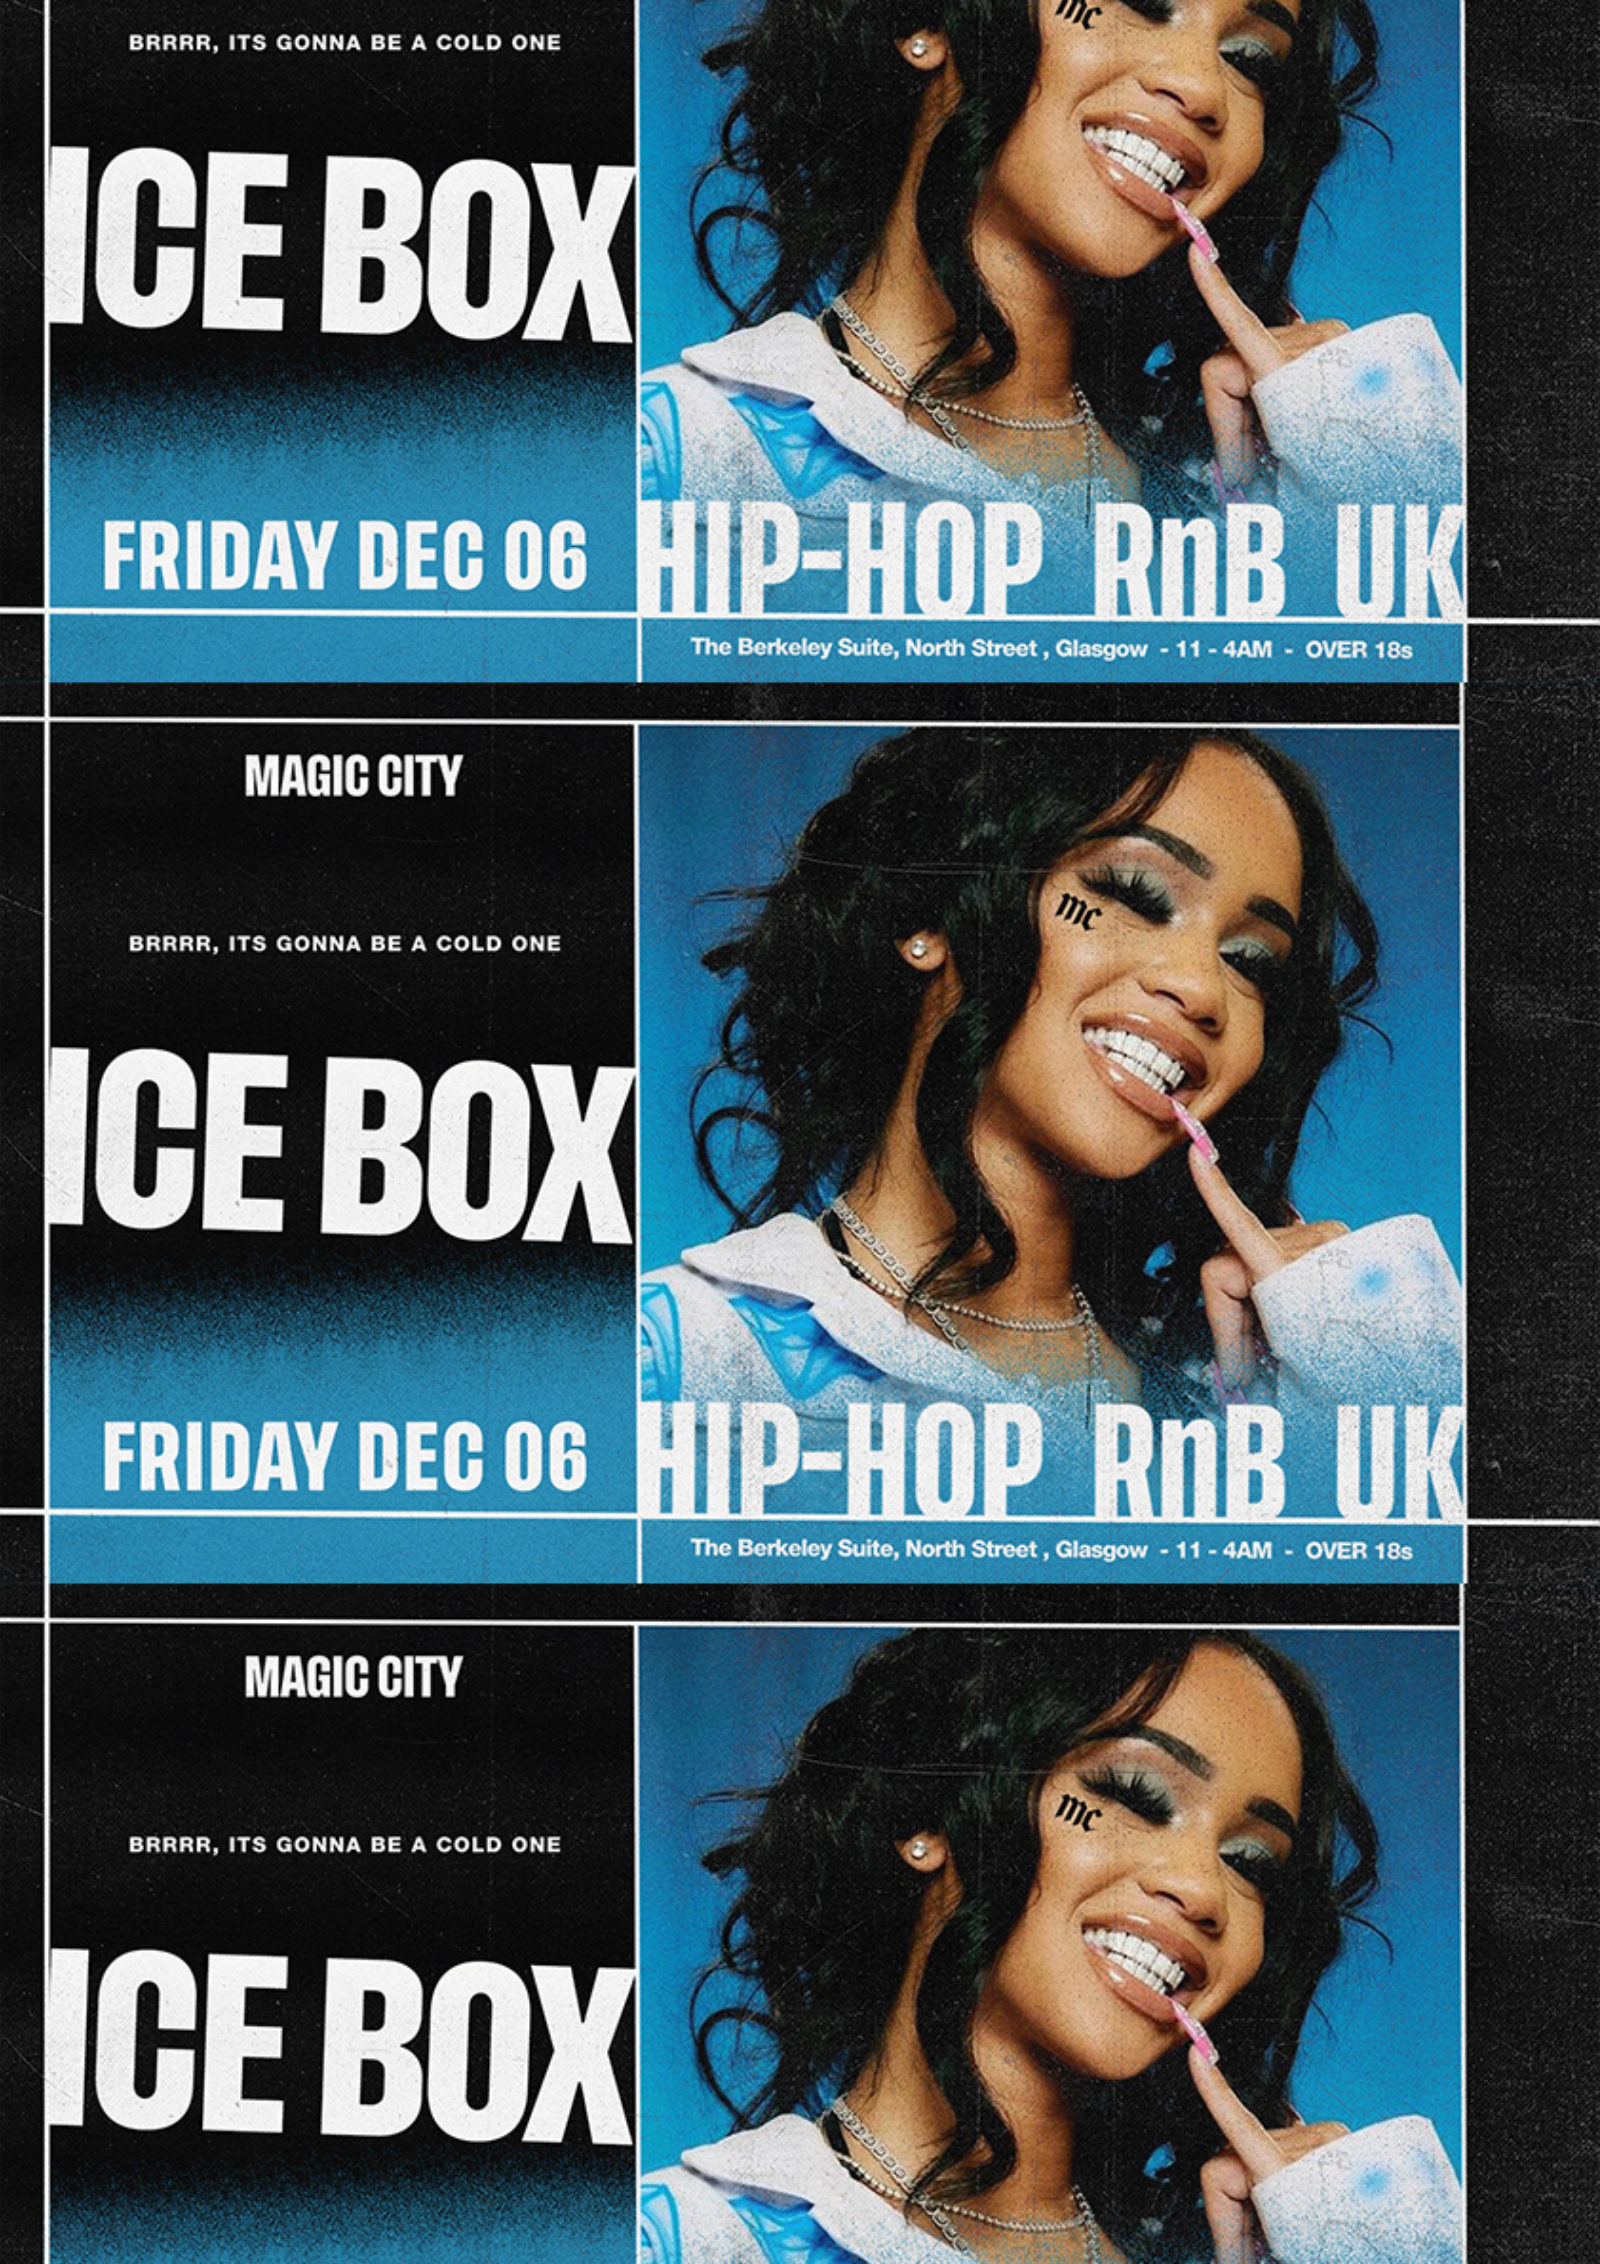 Magic City - ICE BOX